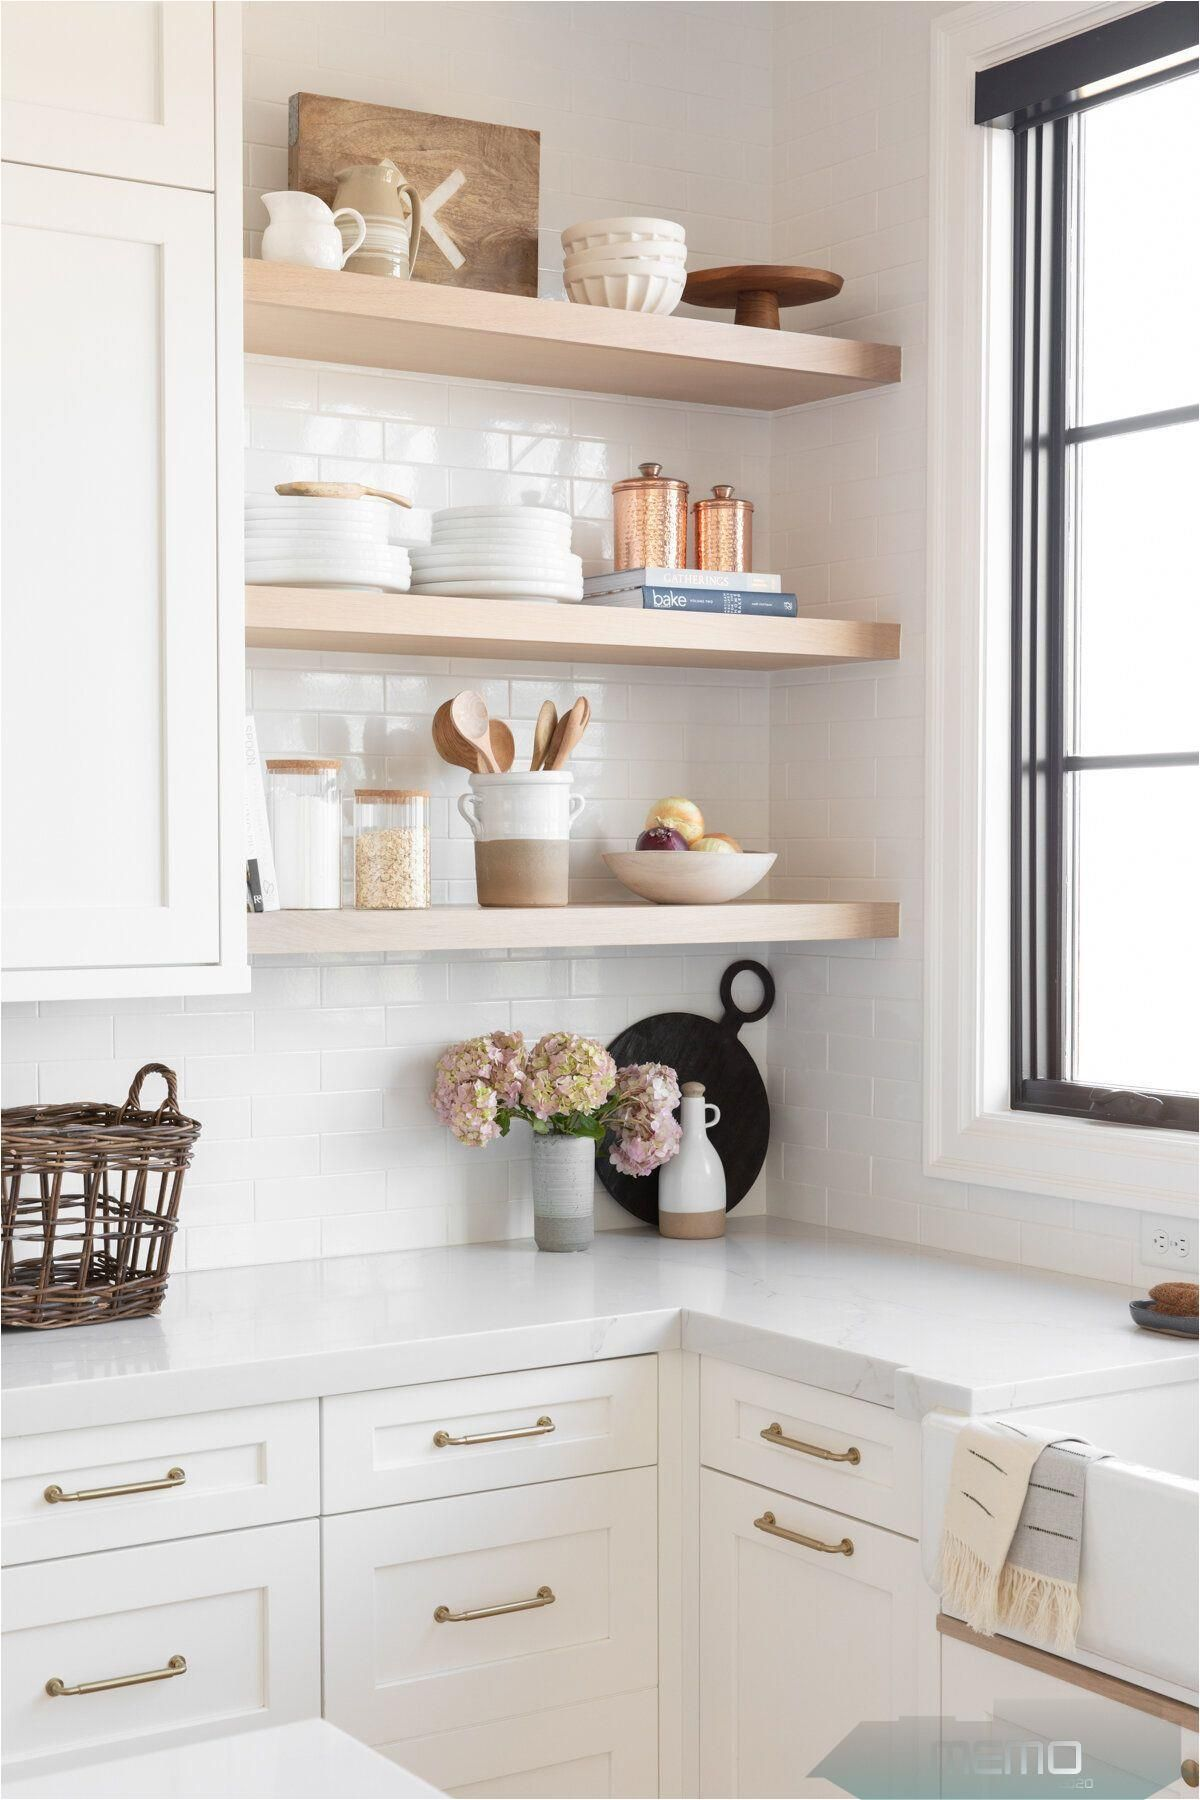 Jan 19 2020 Markdowns Up To 60 Off Ship Free See Them Styled In This Kitchen Farmh In 2020 Kitchen Decor Inspiration Kitchen Shelves Styling Home Decor Kitchen